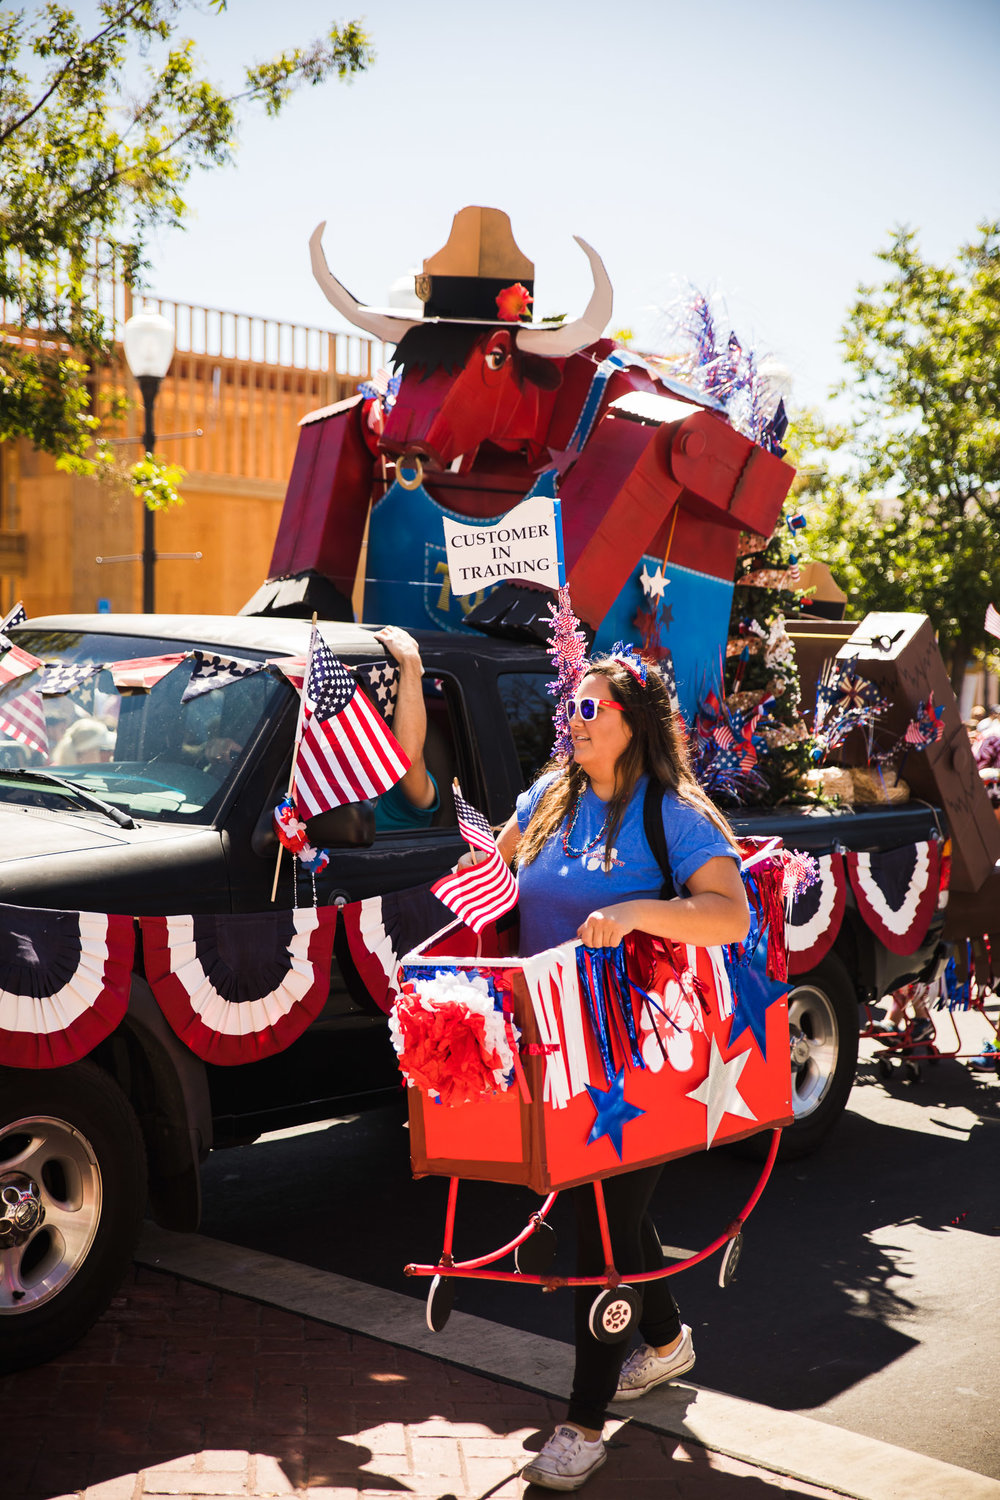 Archer_Inspired_Photography_Morgan_Hill_California_4th_of_july_parade-95.jpg